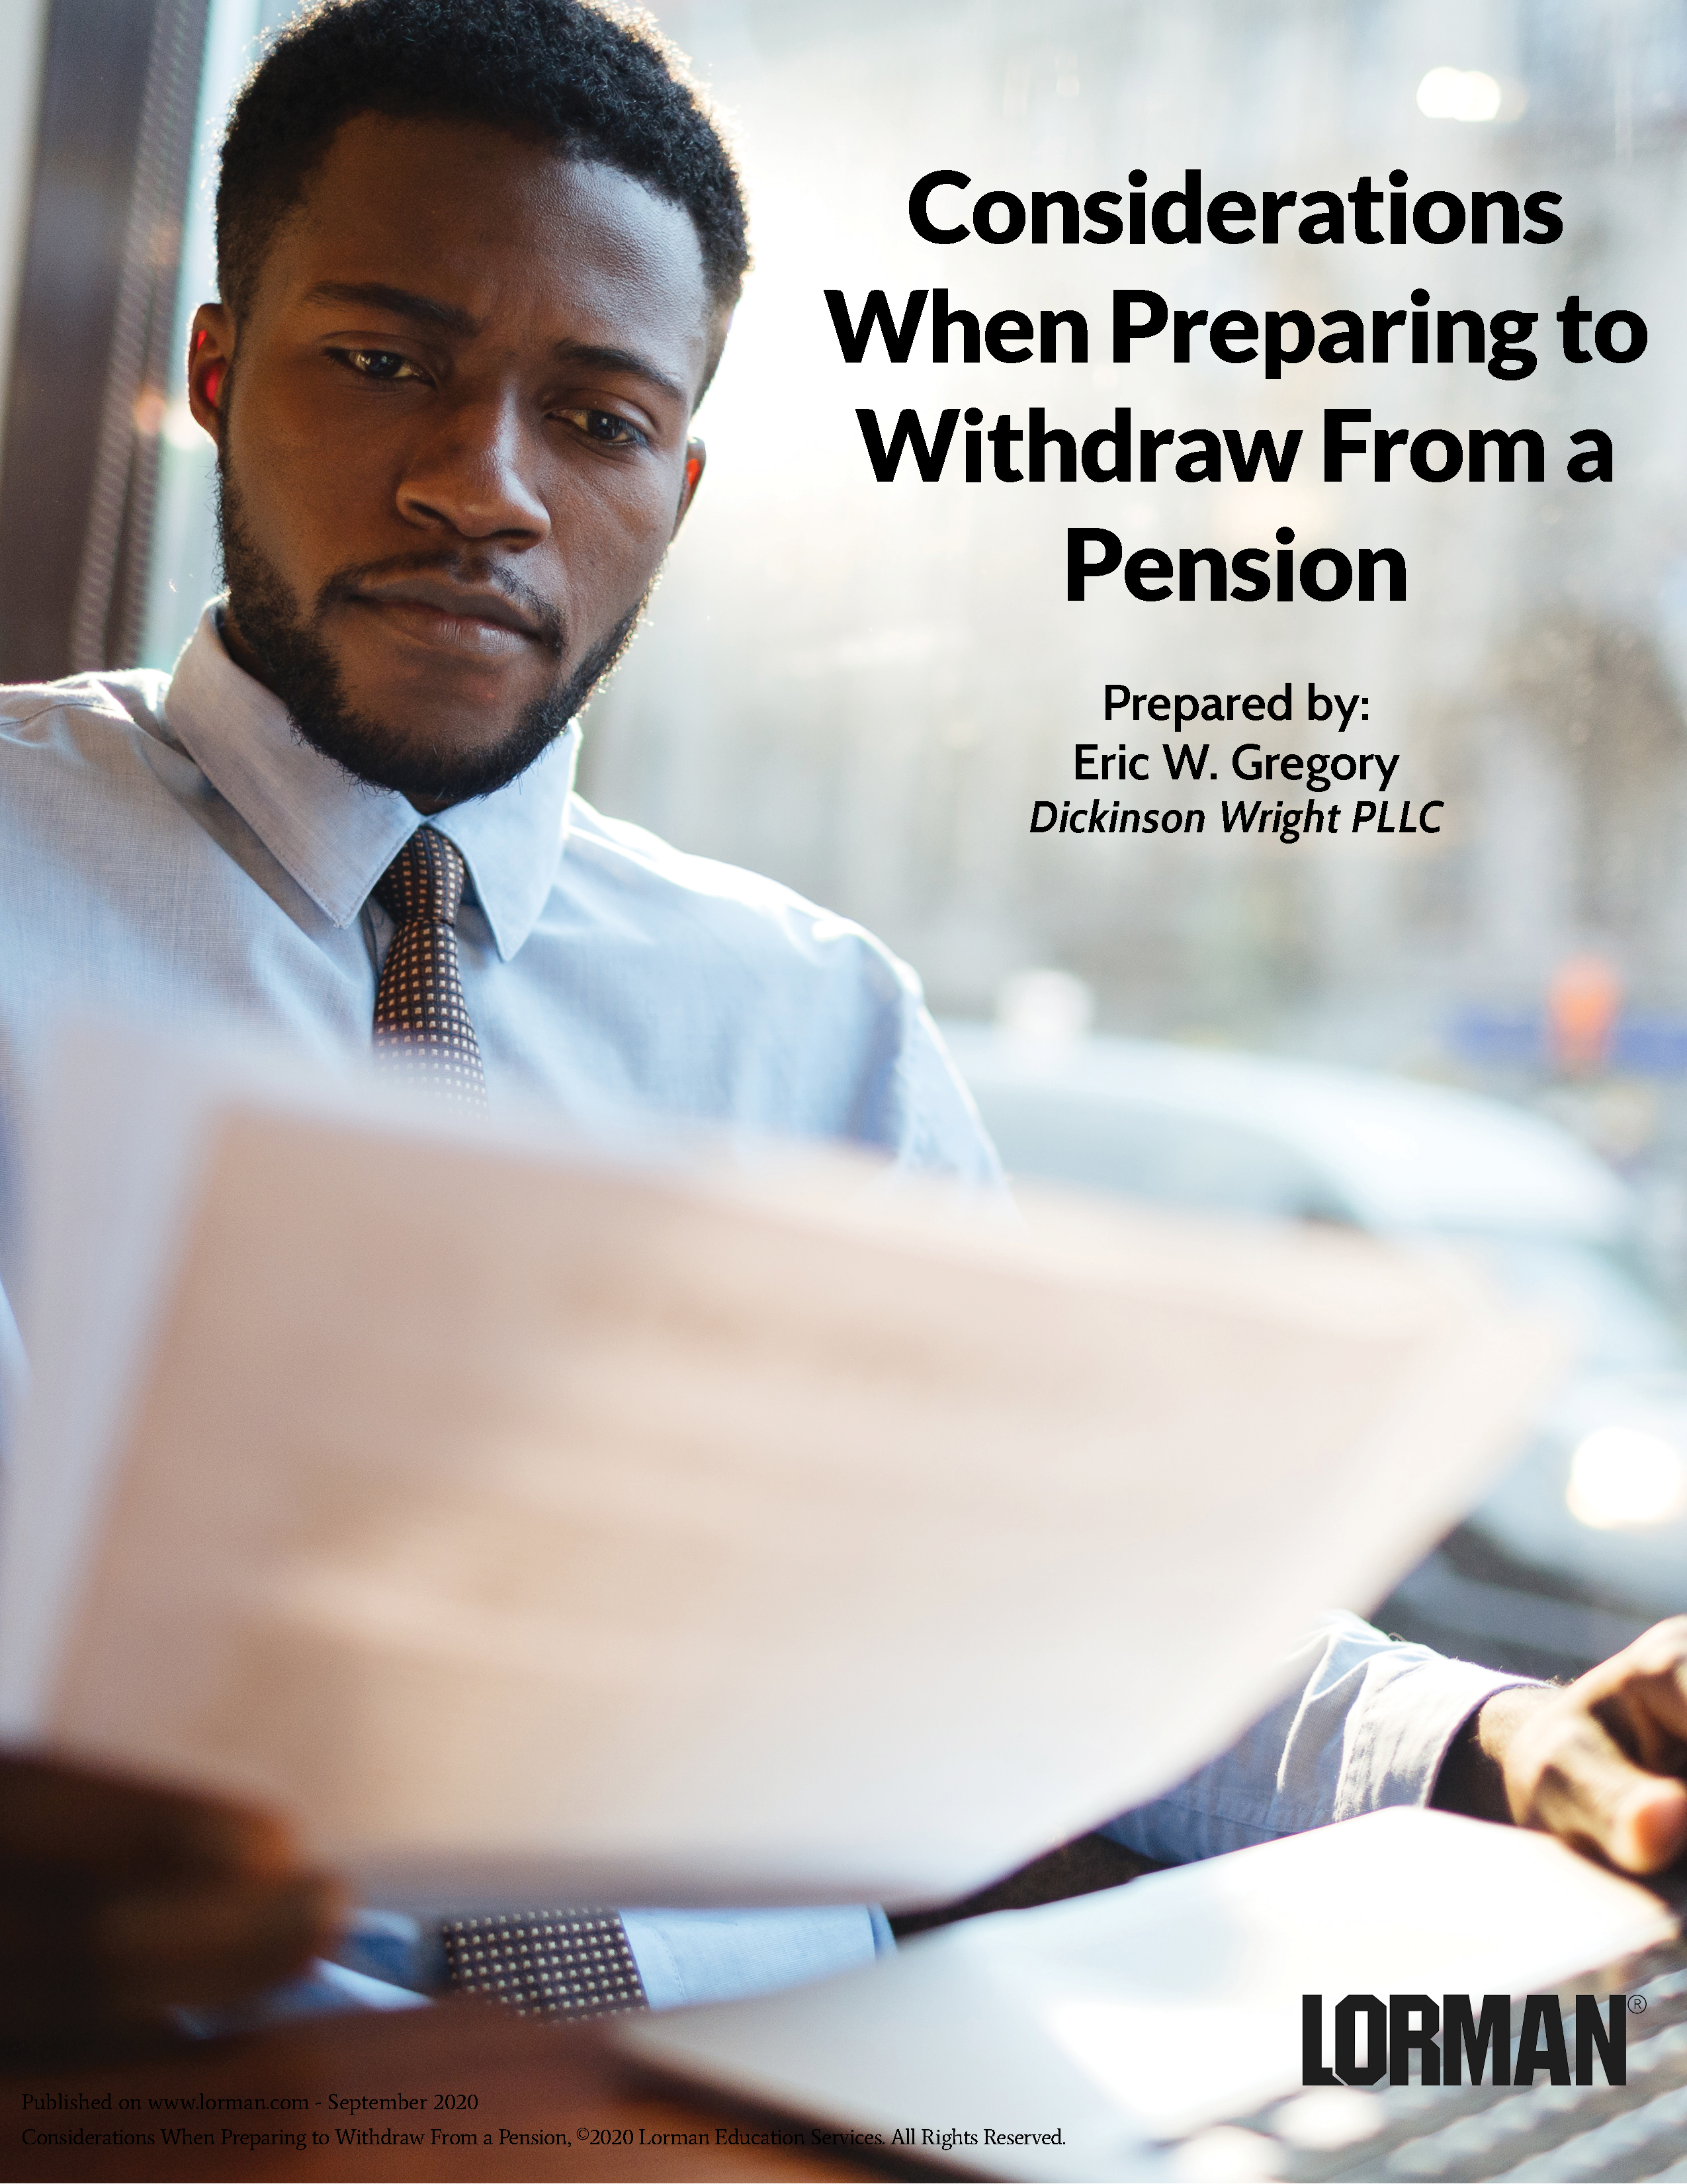 Considerations When Preparing to Withdraw From a Pension